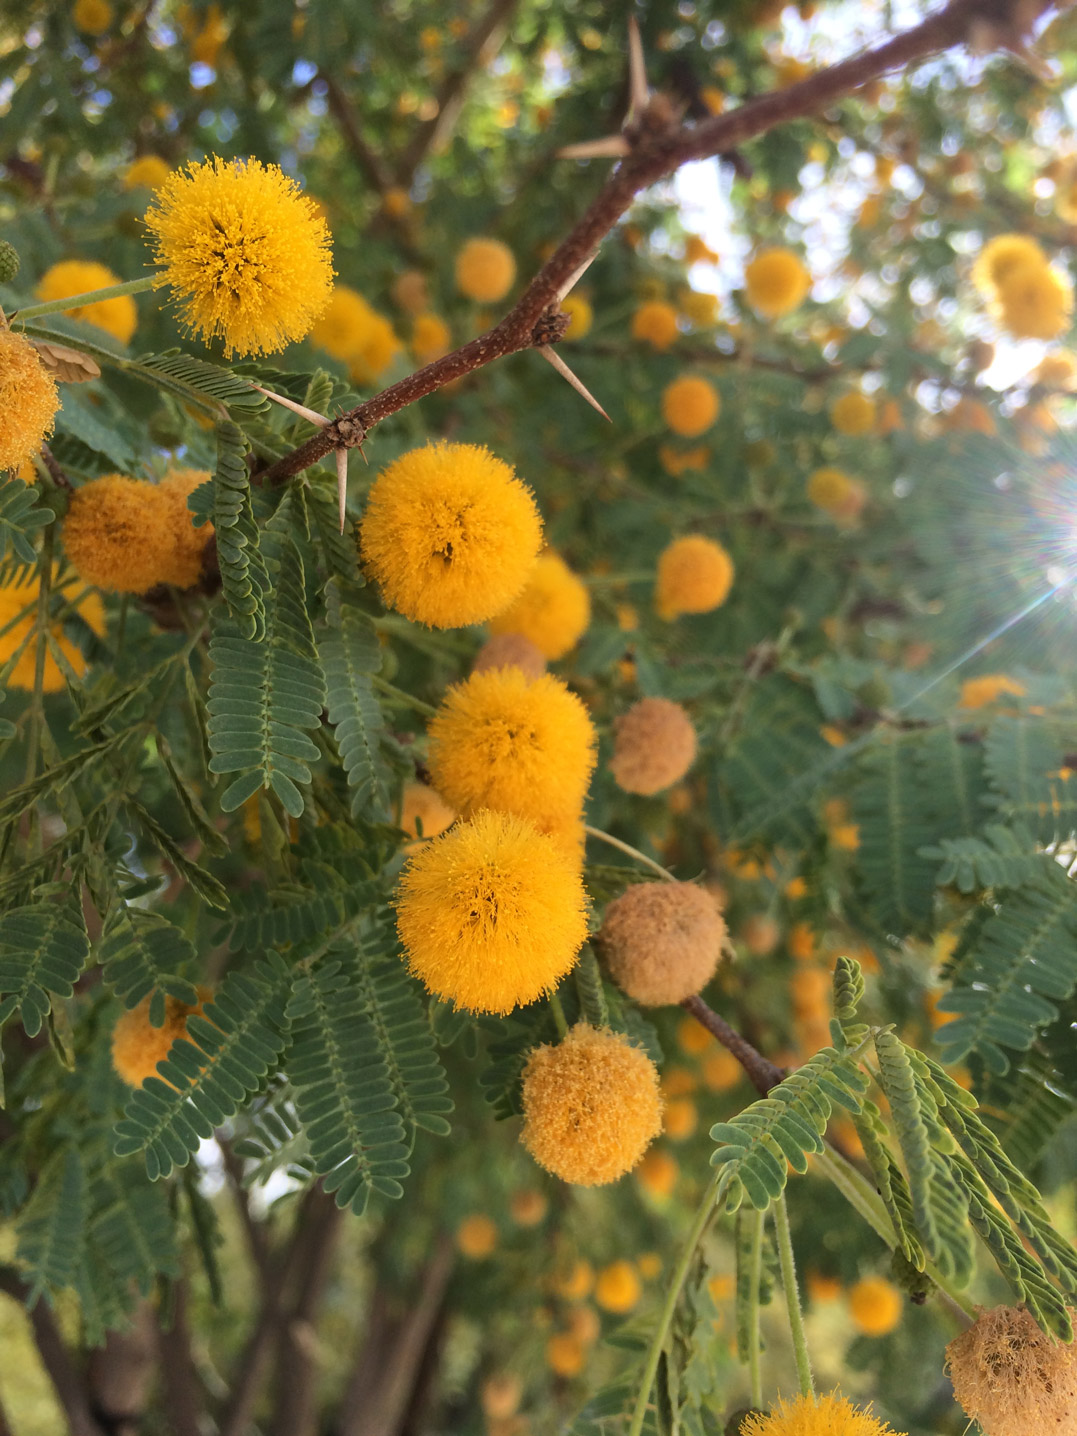 A close-up of the orange blooms of the Sweet Acacia.